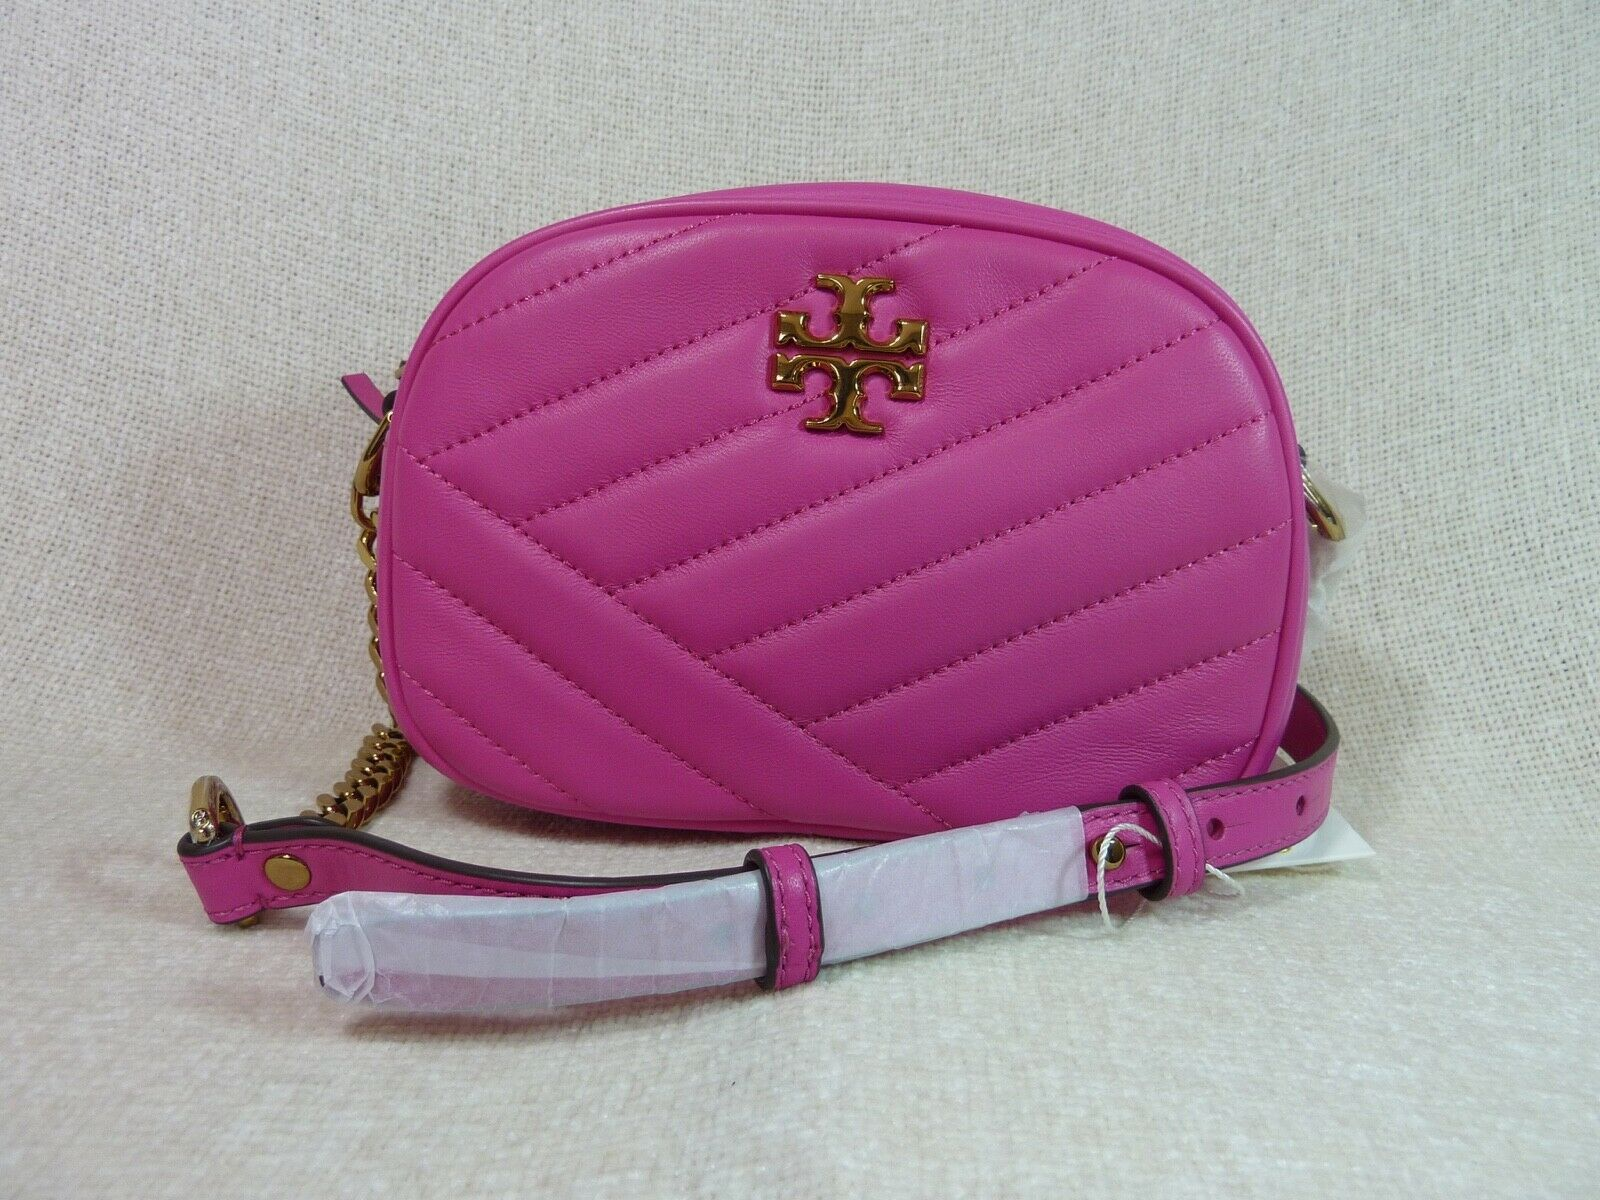 NWT Tory Burch Crazy Pink Kira Chevron Small Camera Bag $358